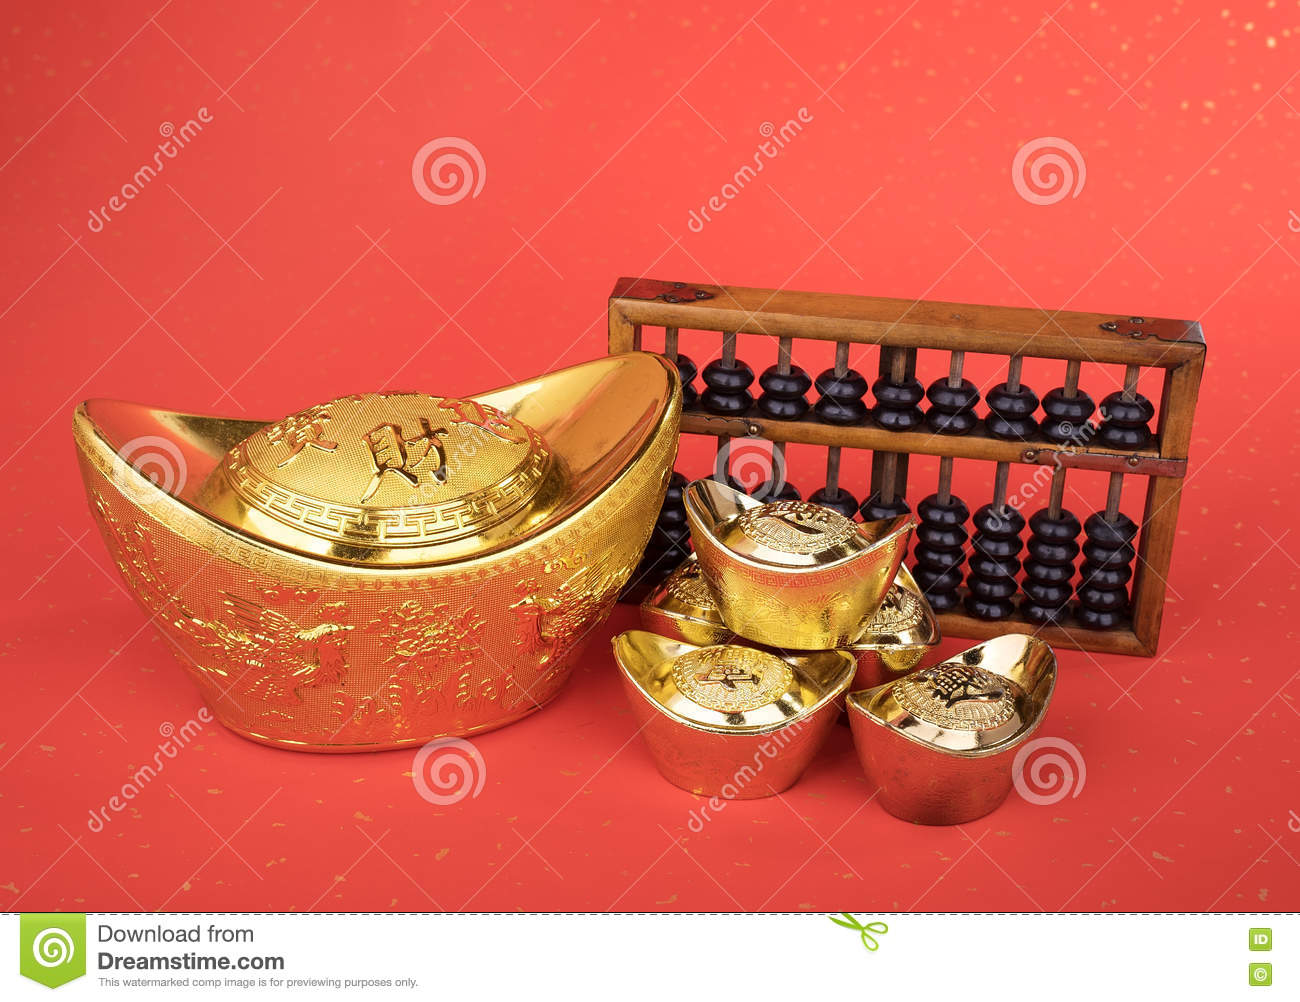 Chinese gold ingot and abacus mean symbols of wealth